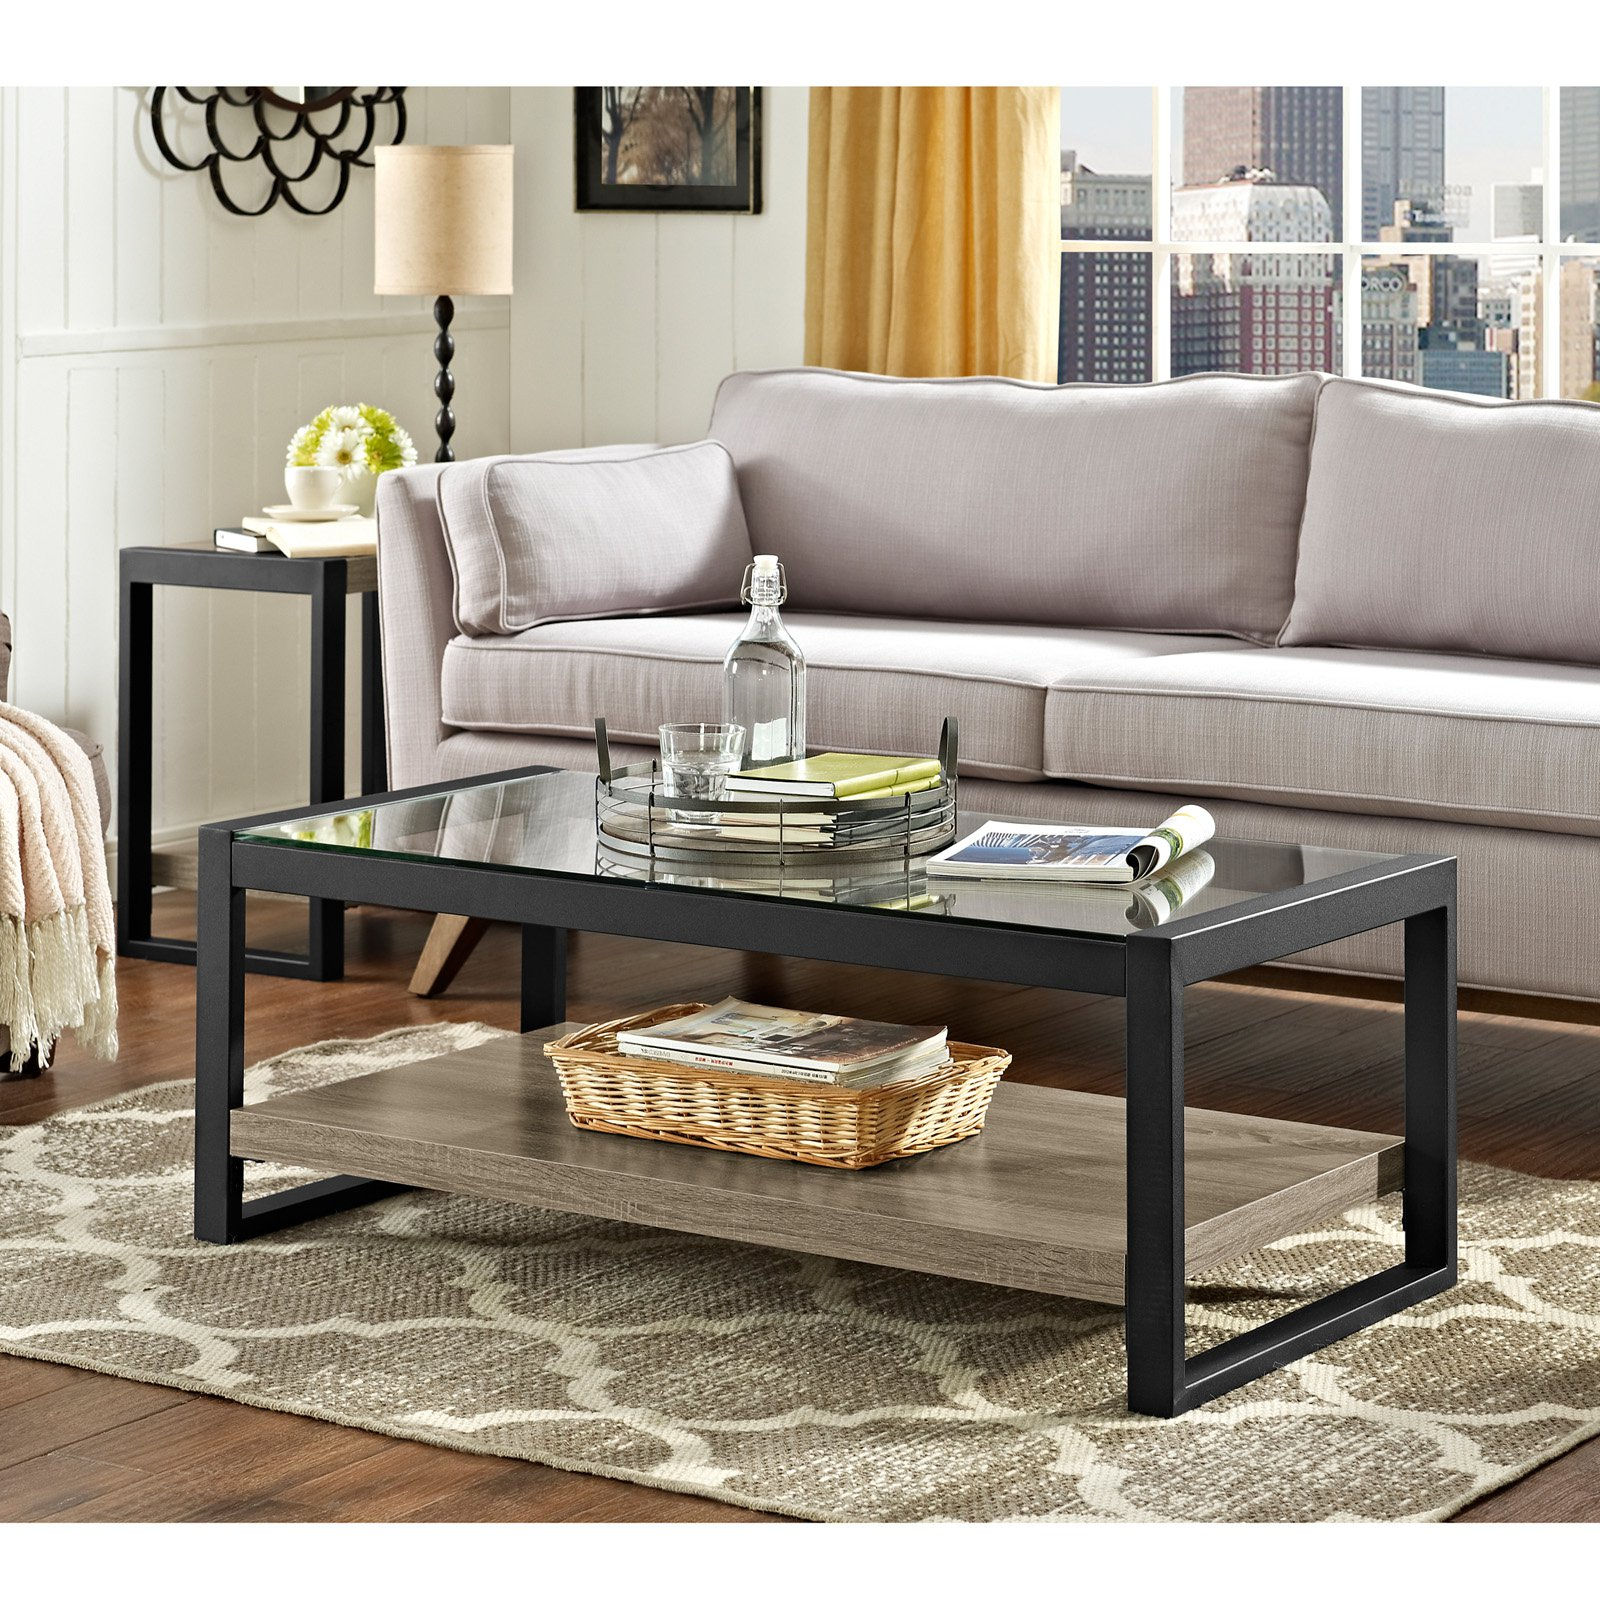 Walker Edison Urban Blend Coffee Table Walmart